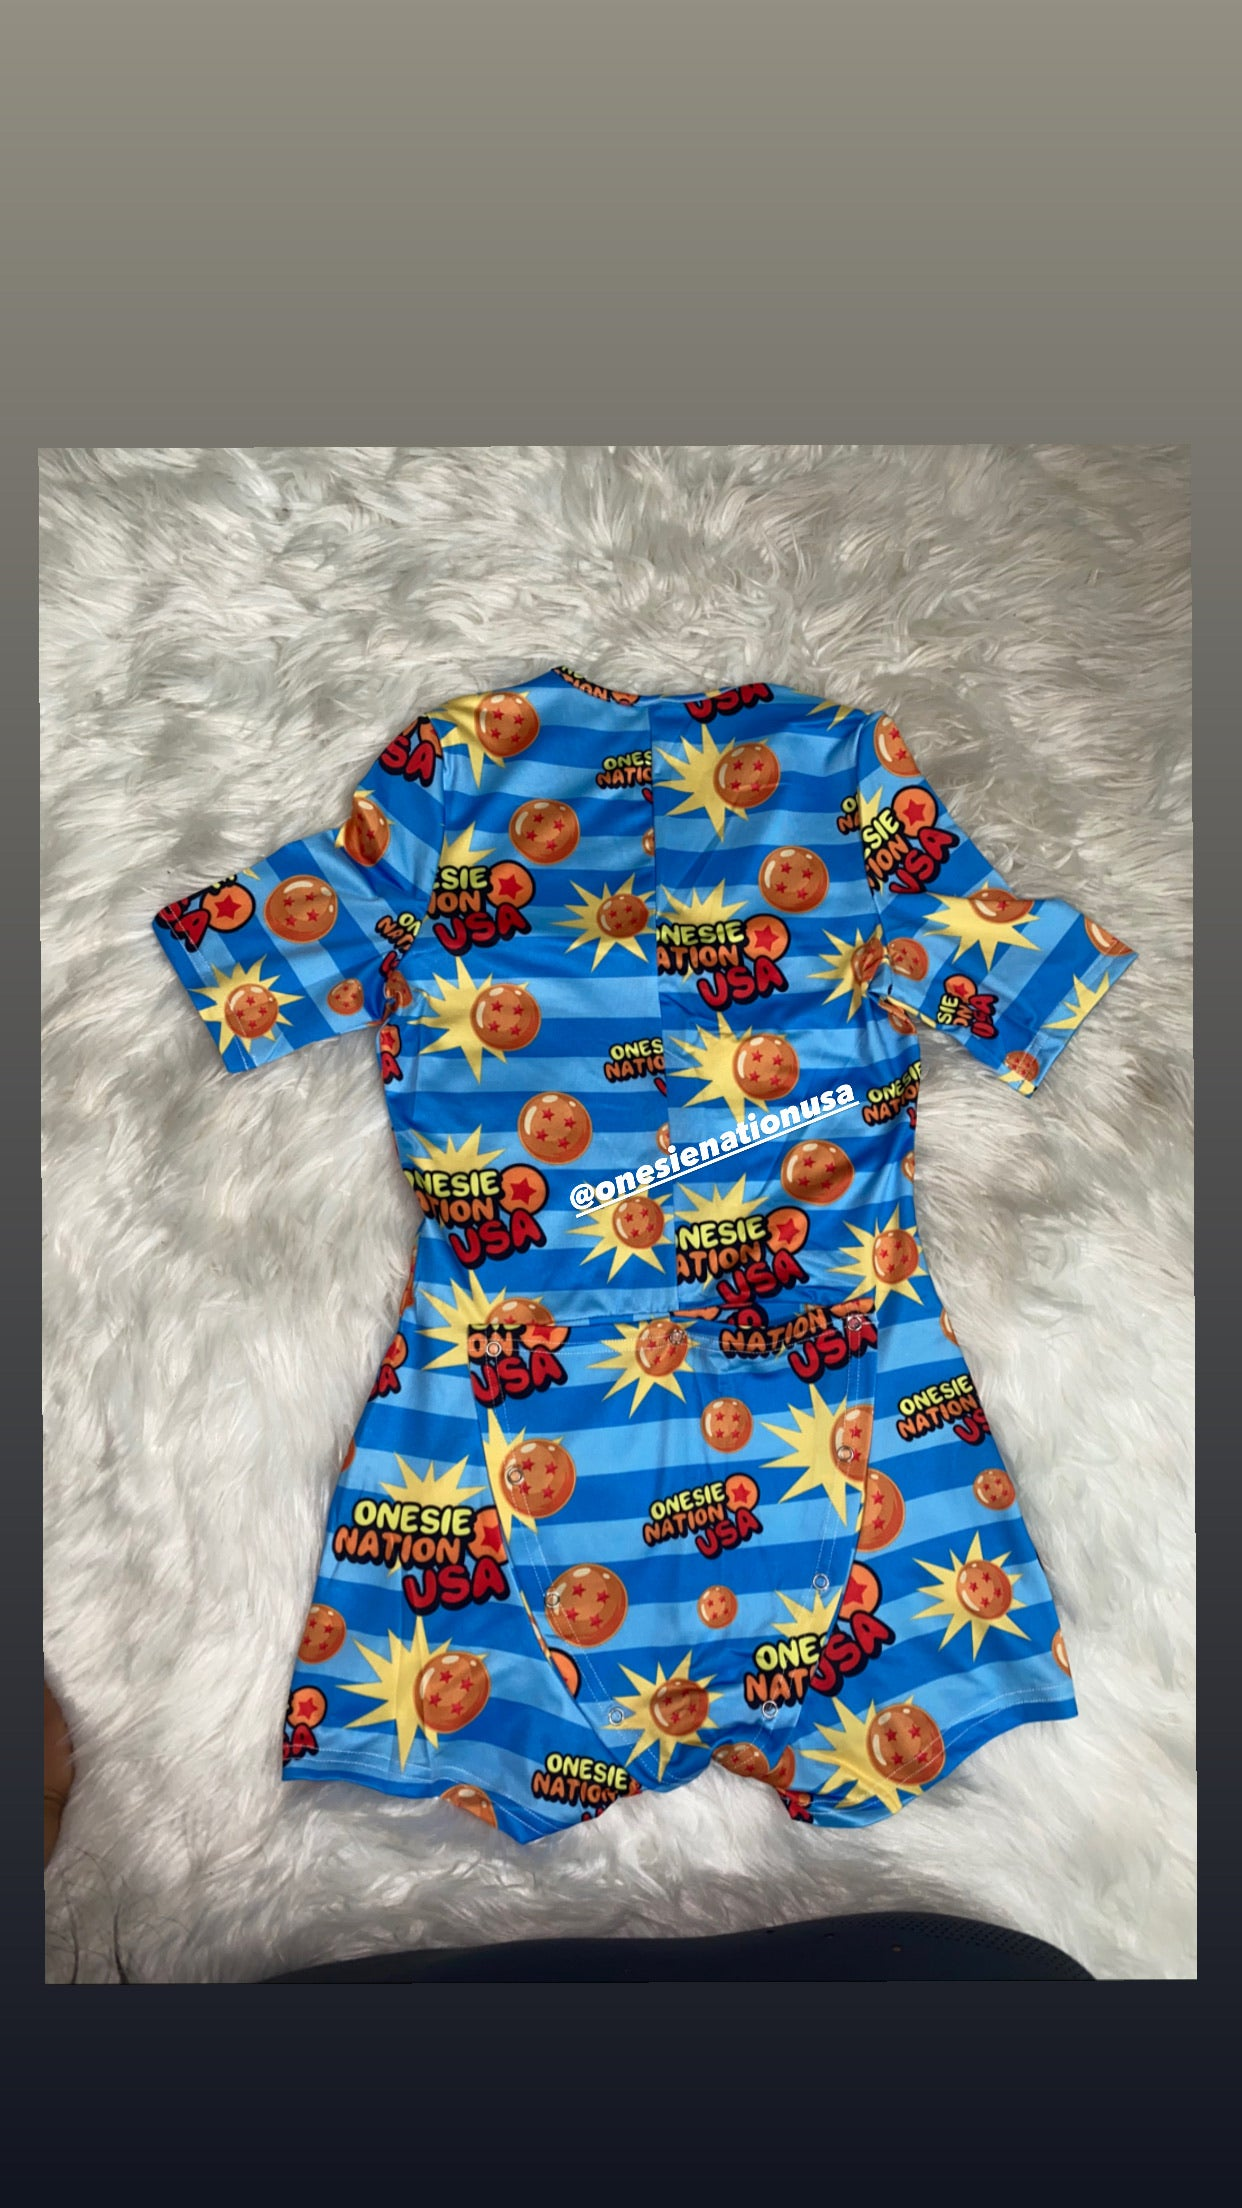 ONU Dragon Ball - Onesie Nation USA